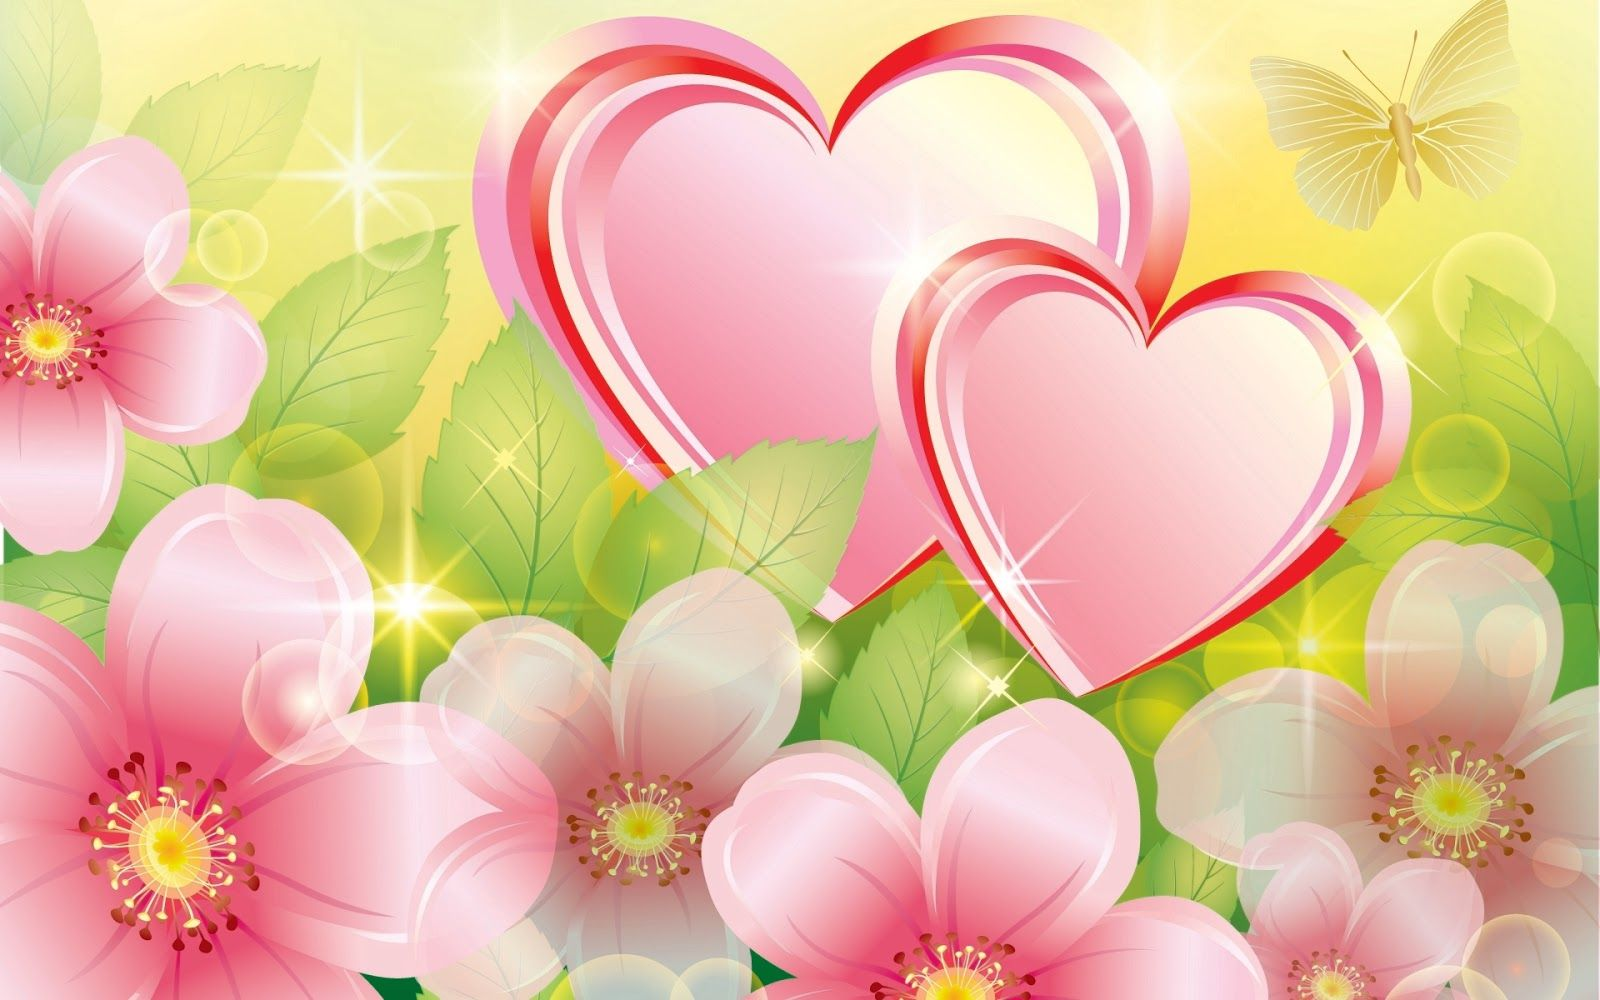 Beautiful Love Heart Wallpaper HD Pics One Pictures 1920x1080 Images Of Hearts Wallpapers 42